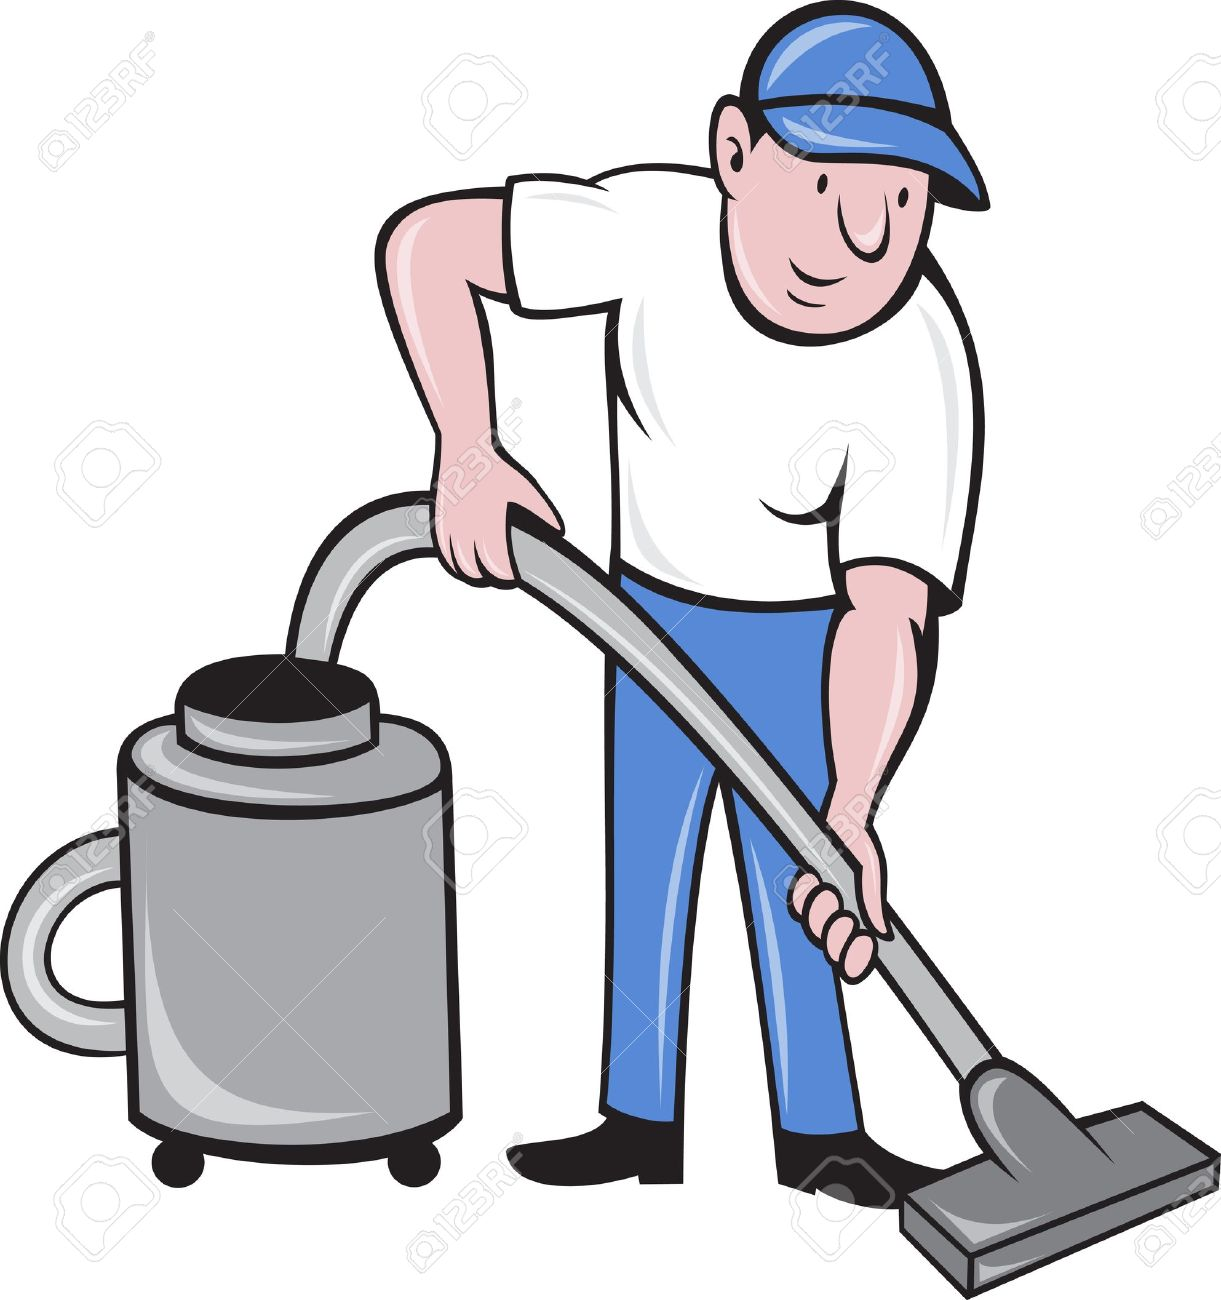 Vacuum cleaner clipart vacuum cleaner clip art - A Vacuum Cleaner Illustration Of A Male Cleaner Vacuuming With Vacuum Cleaning Isolated On White